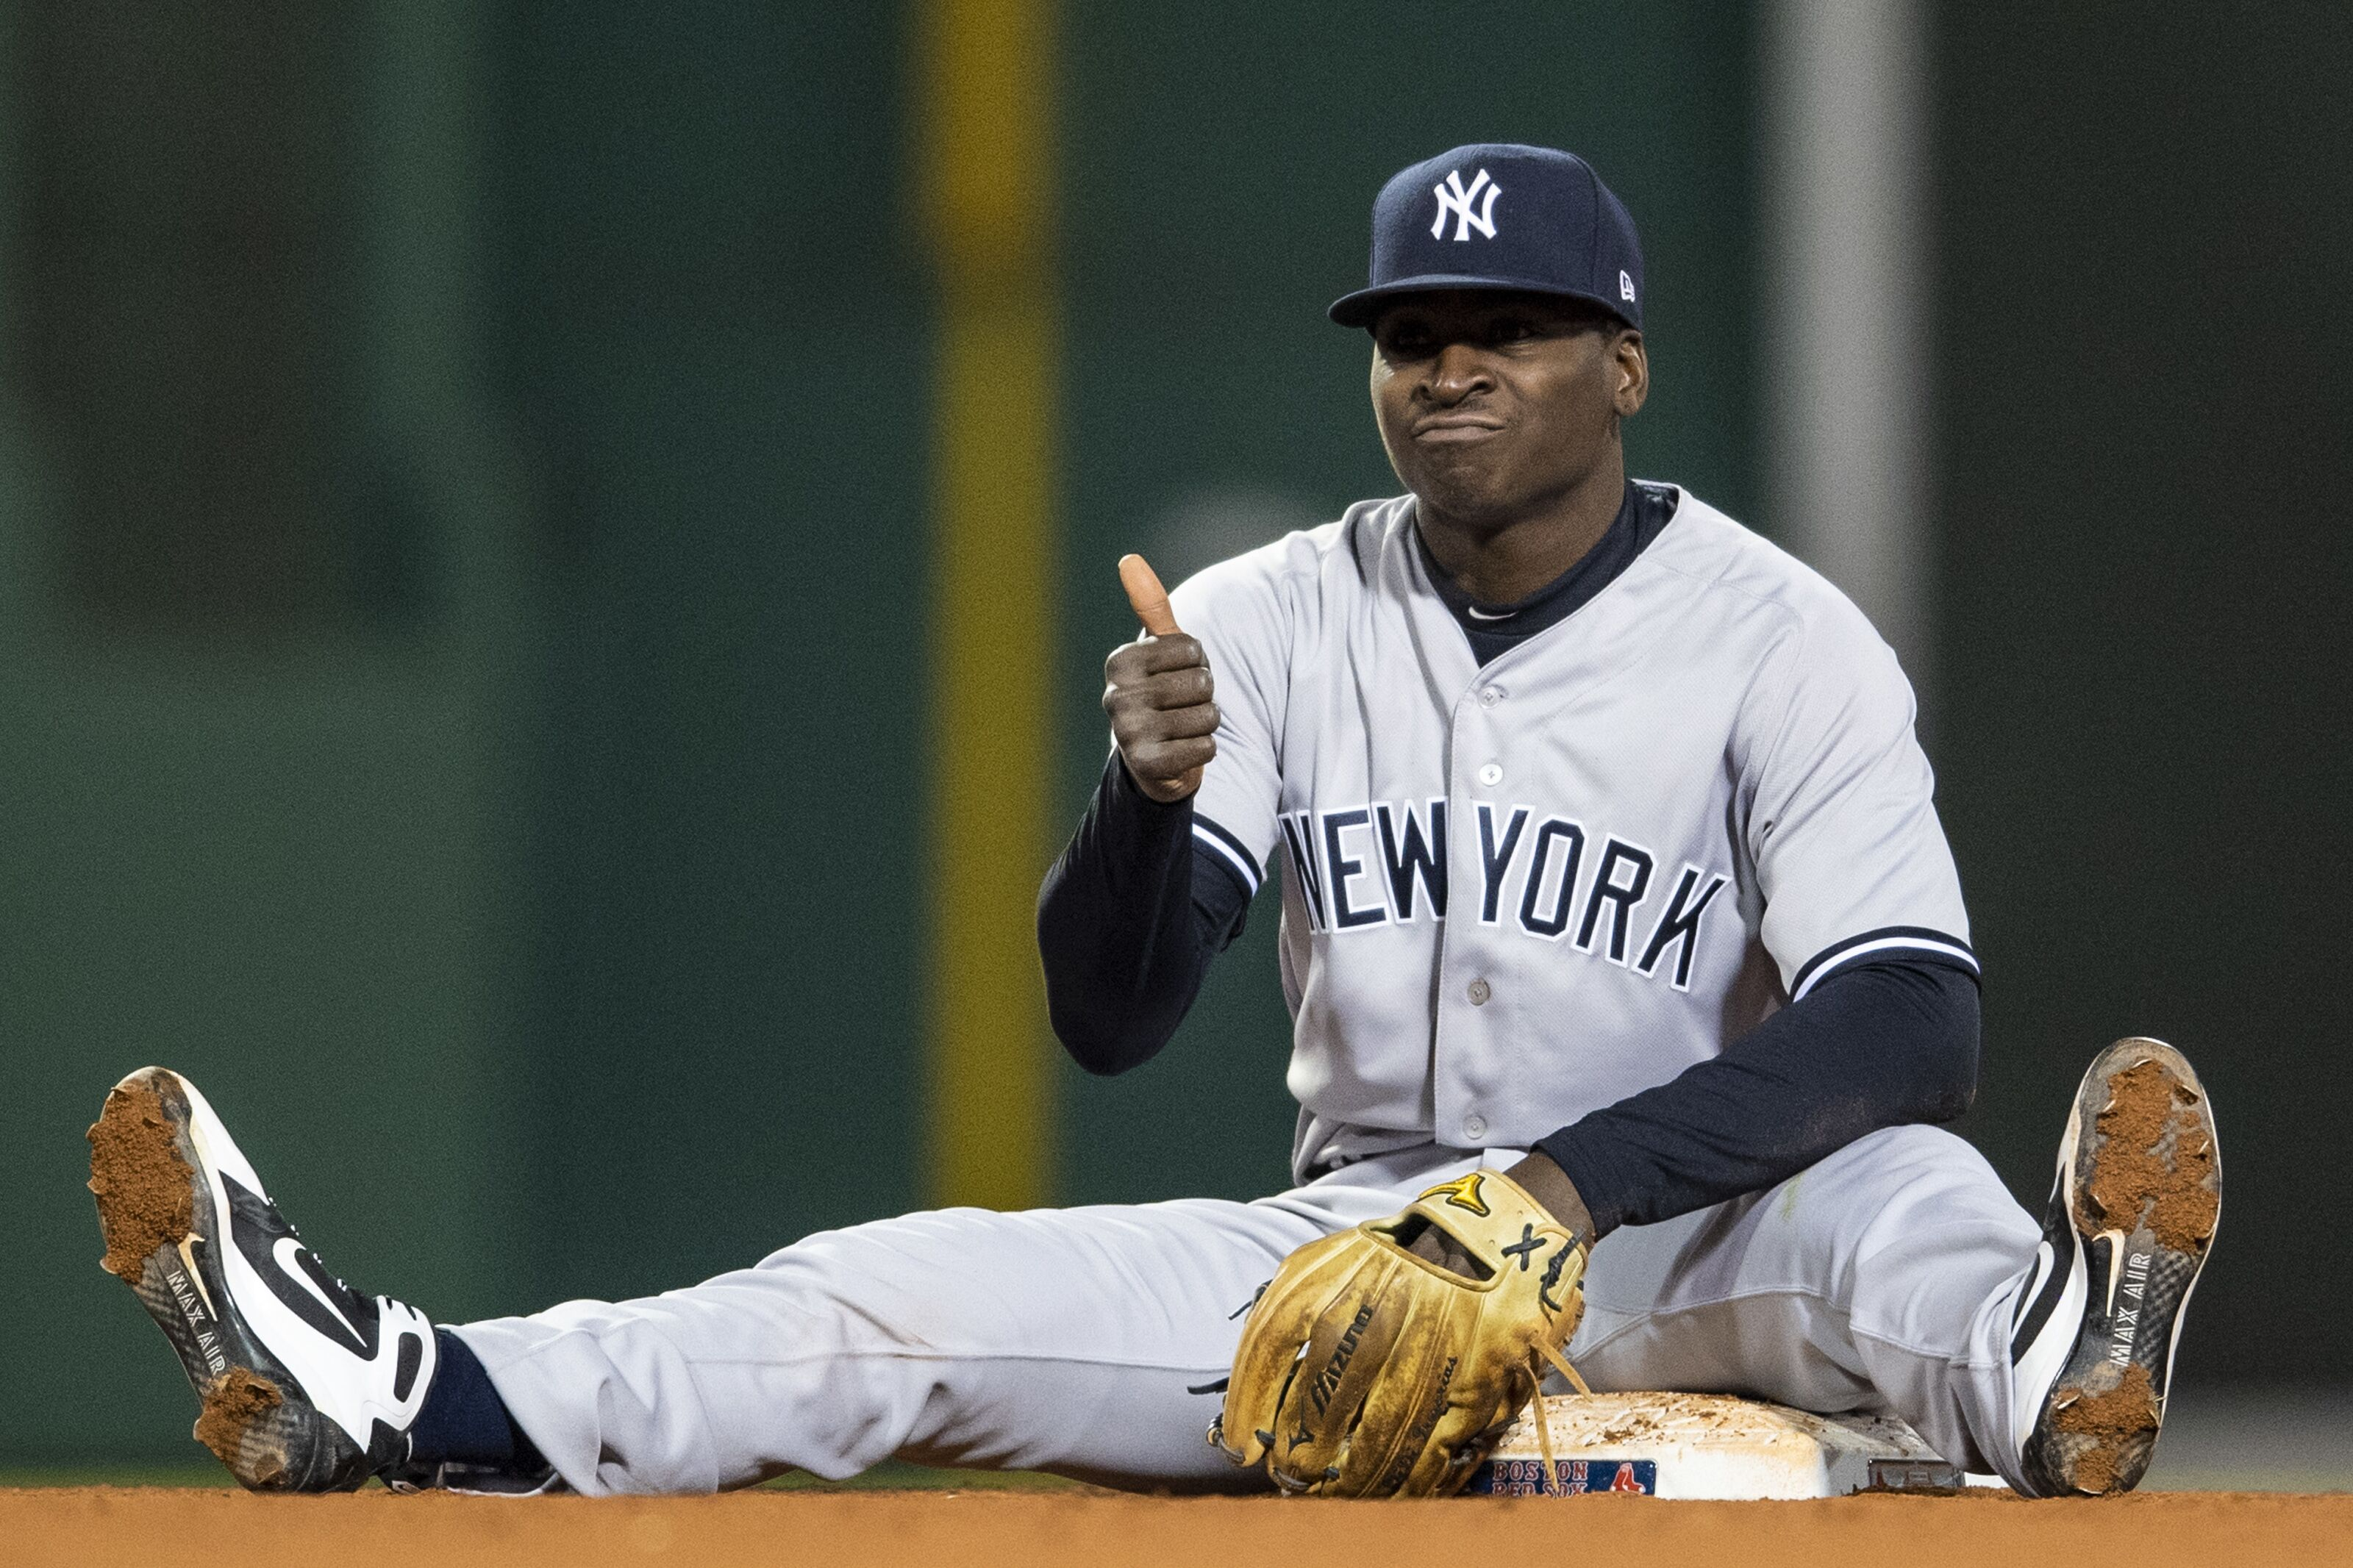 602d621e4c6 New York Yankees  Didi Gregorius is likely headed to the disabled list